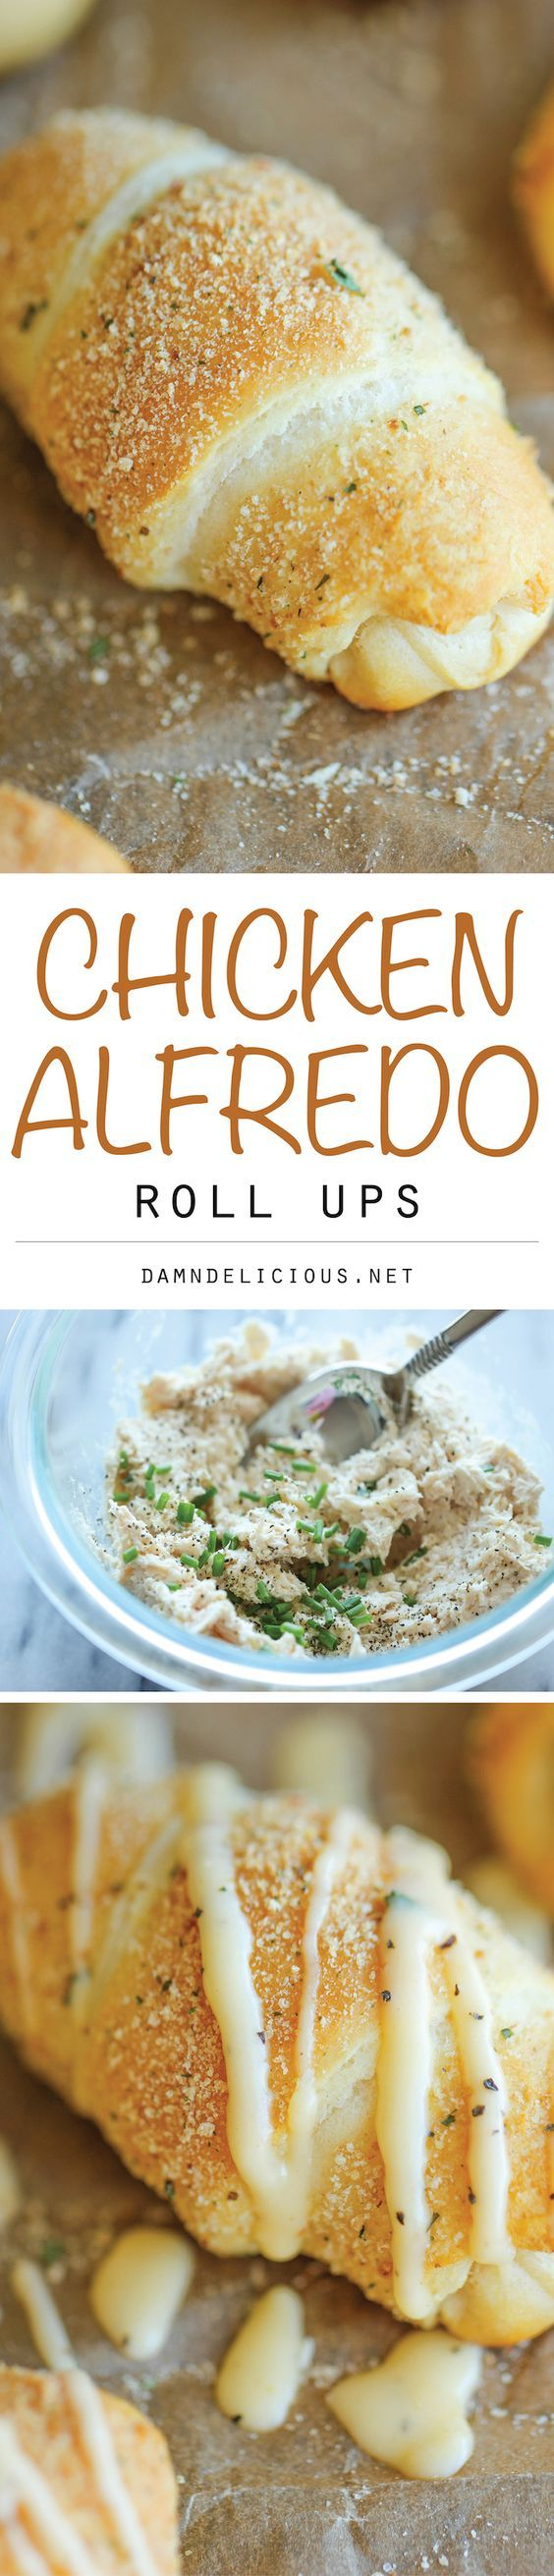 Chicken Alfredo Roll Ups - The easiest, no-fuss chicken alfredo you will ever make, conveniently stuffed in the butteriest roll ever!: